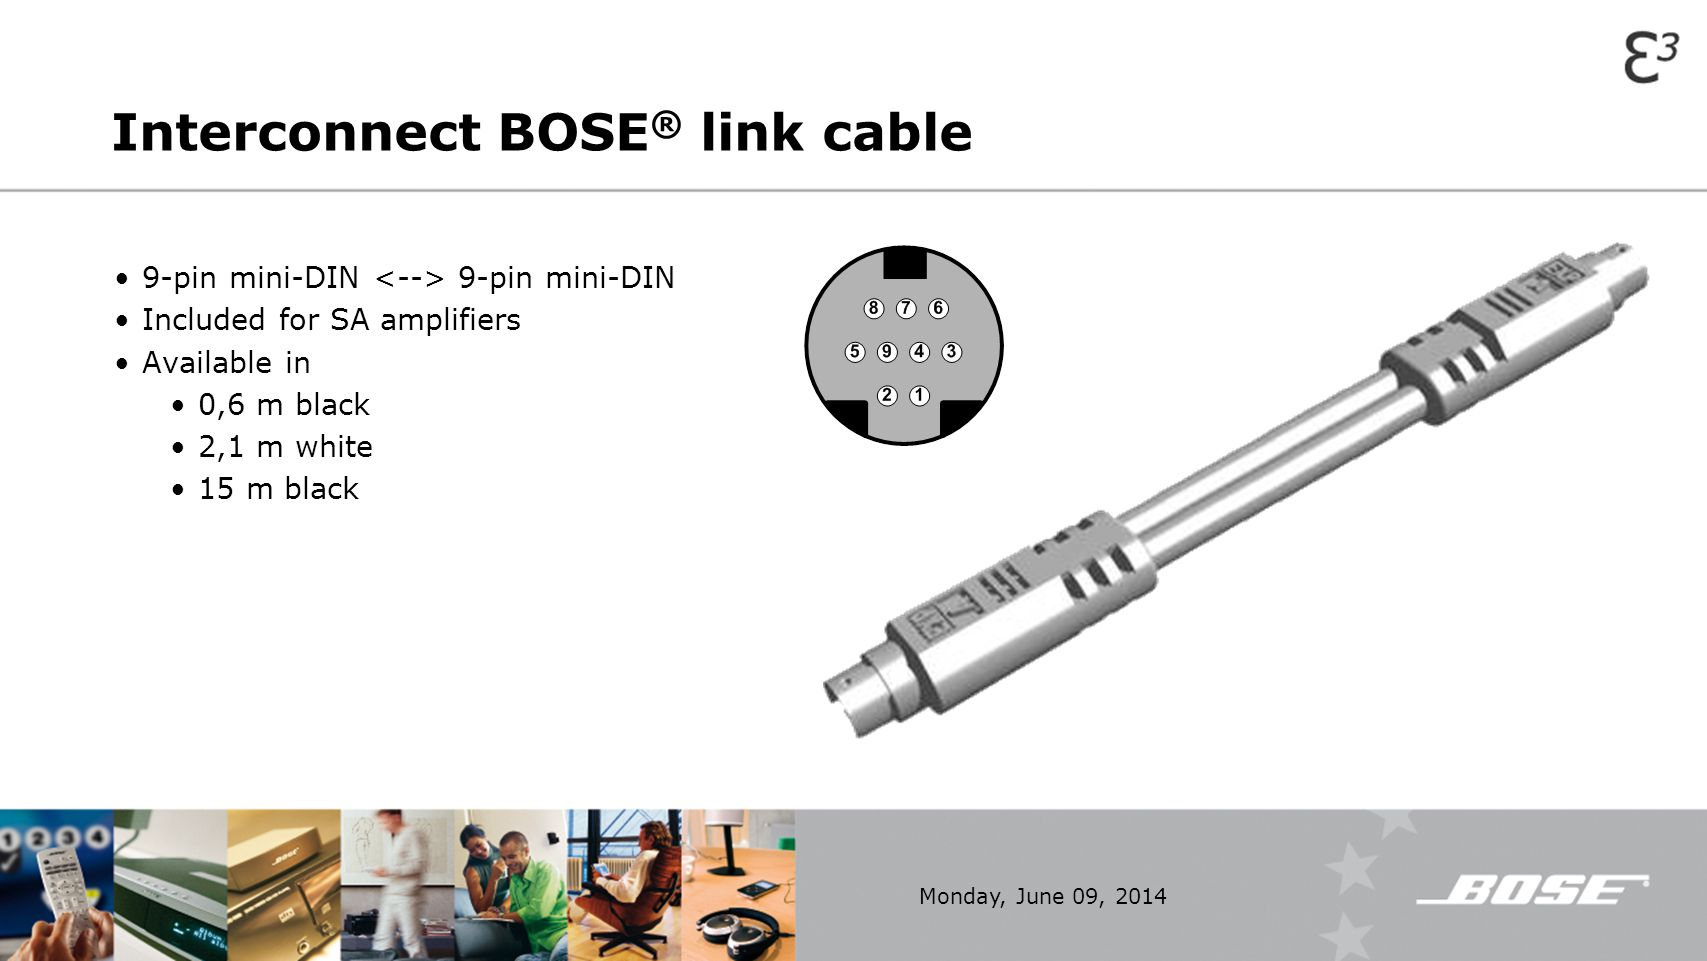 Interconnect BOSE® link cable